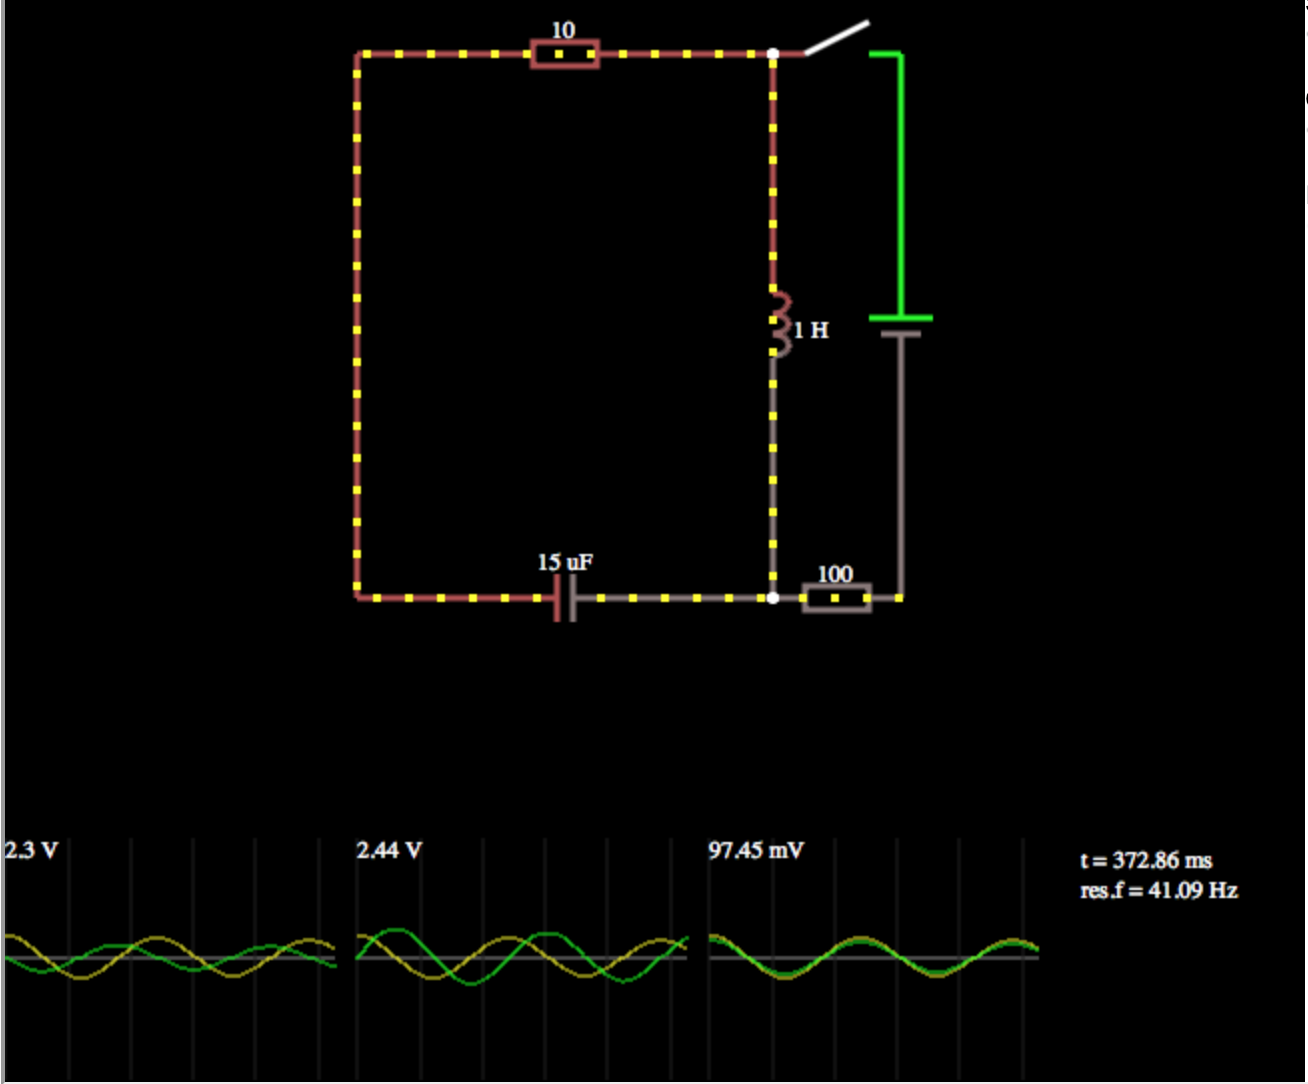 Circuit Simulator Falstad Wiring Diagram Electronic Download The This Is Rh Pinterest Com Bad Connection